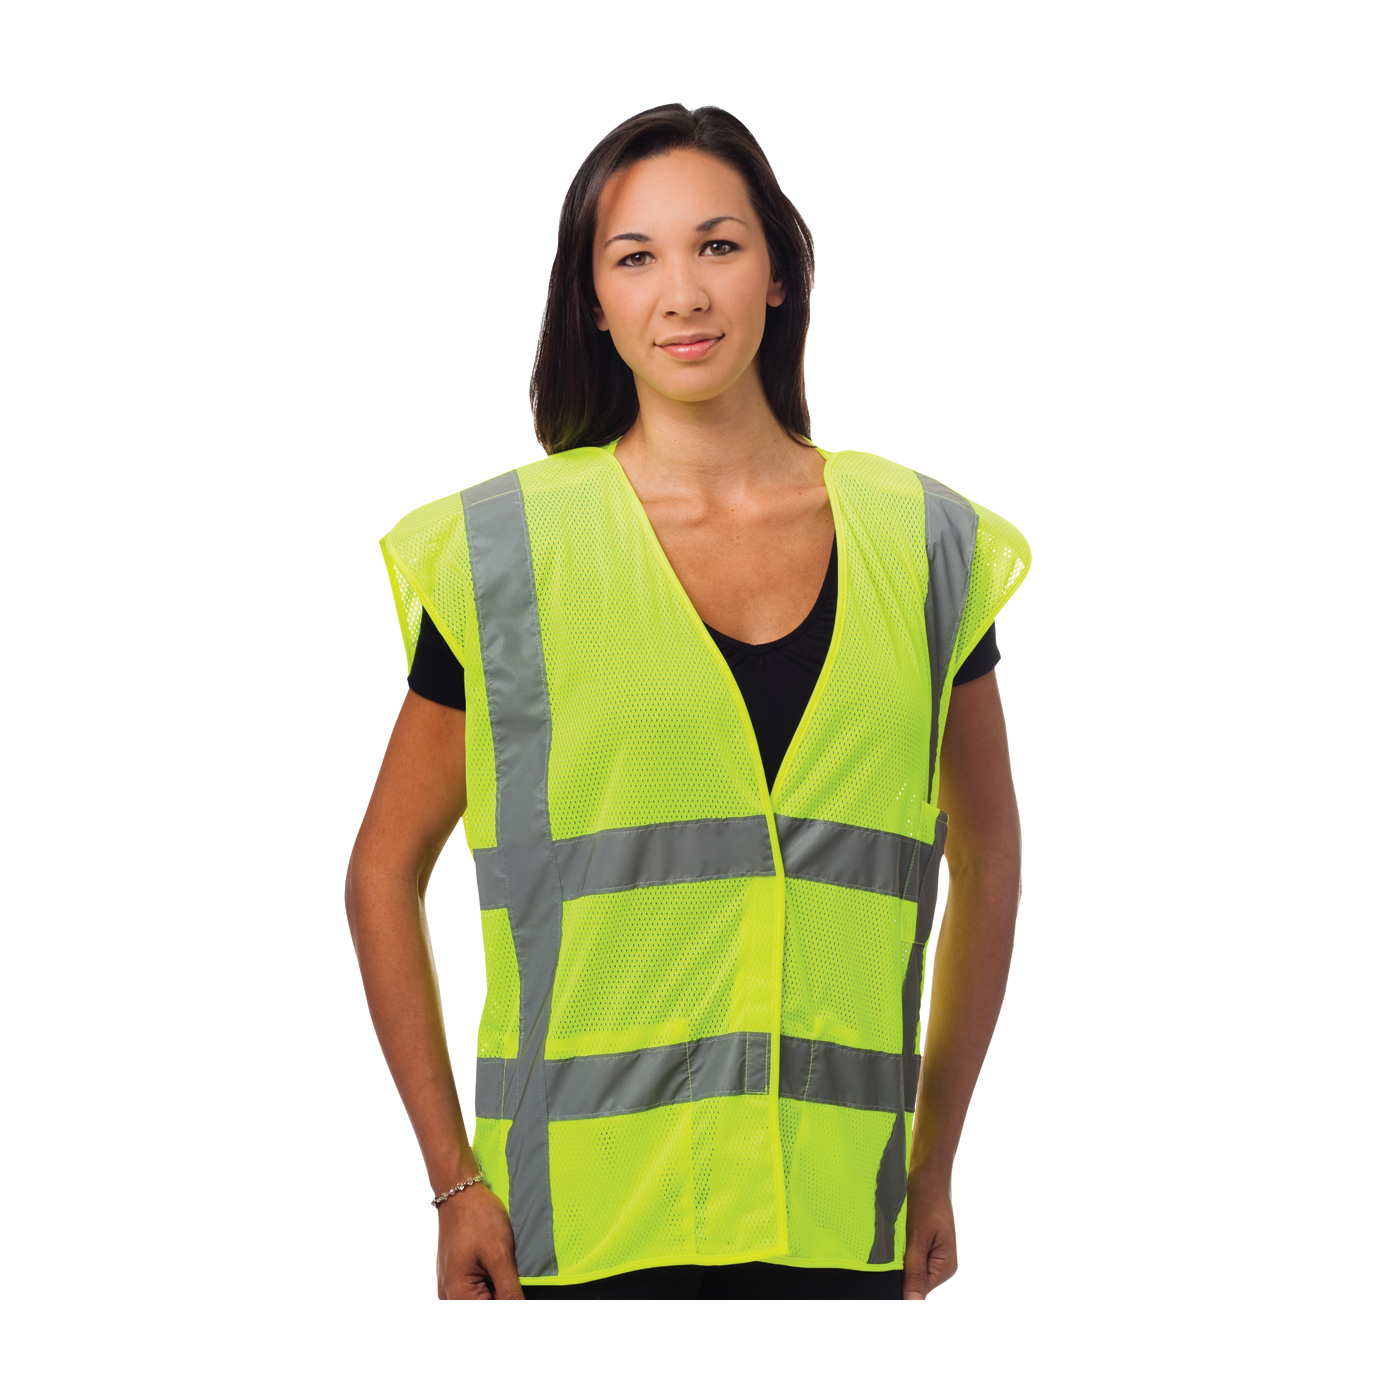 Ansi Type R Class 2 Three Pocket Mesh Breakaway Reflective